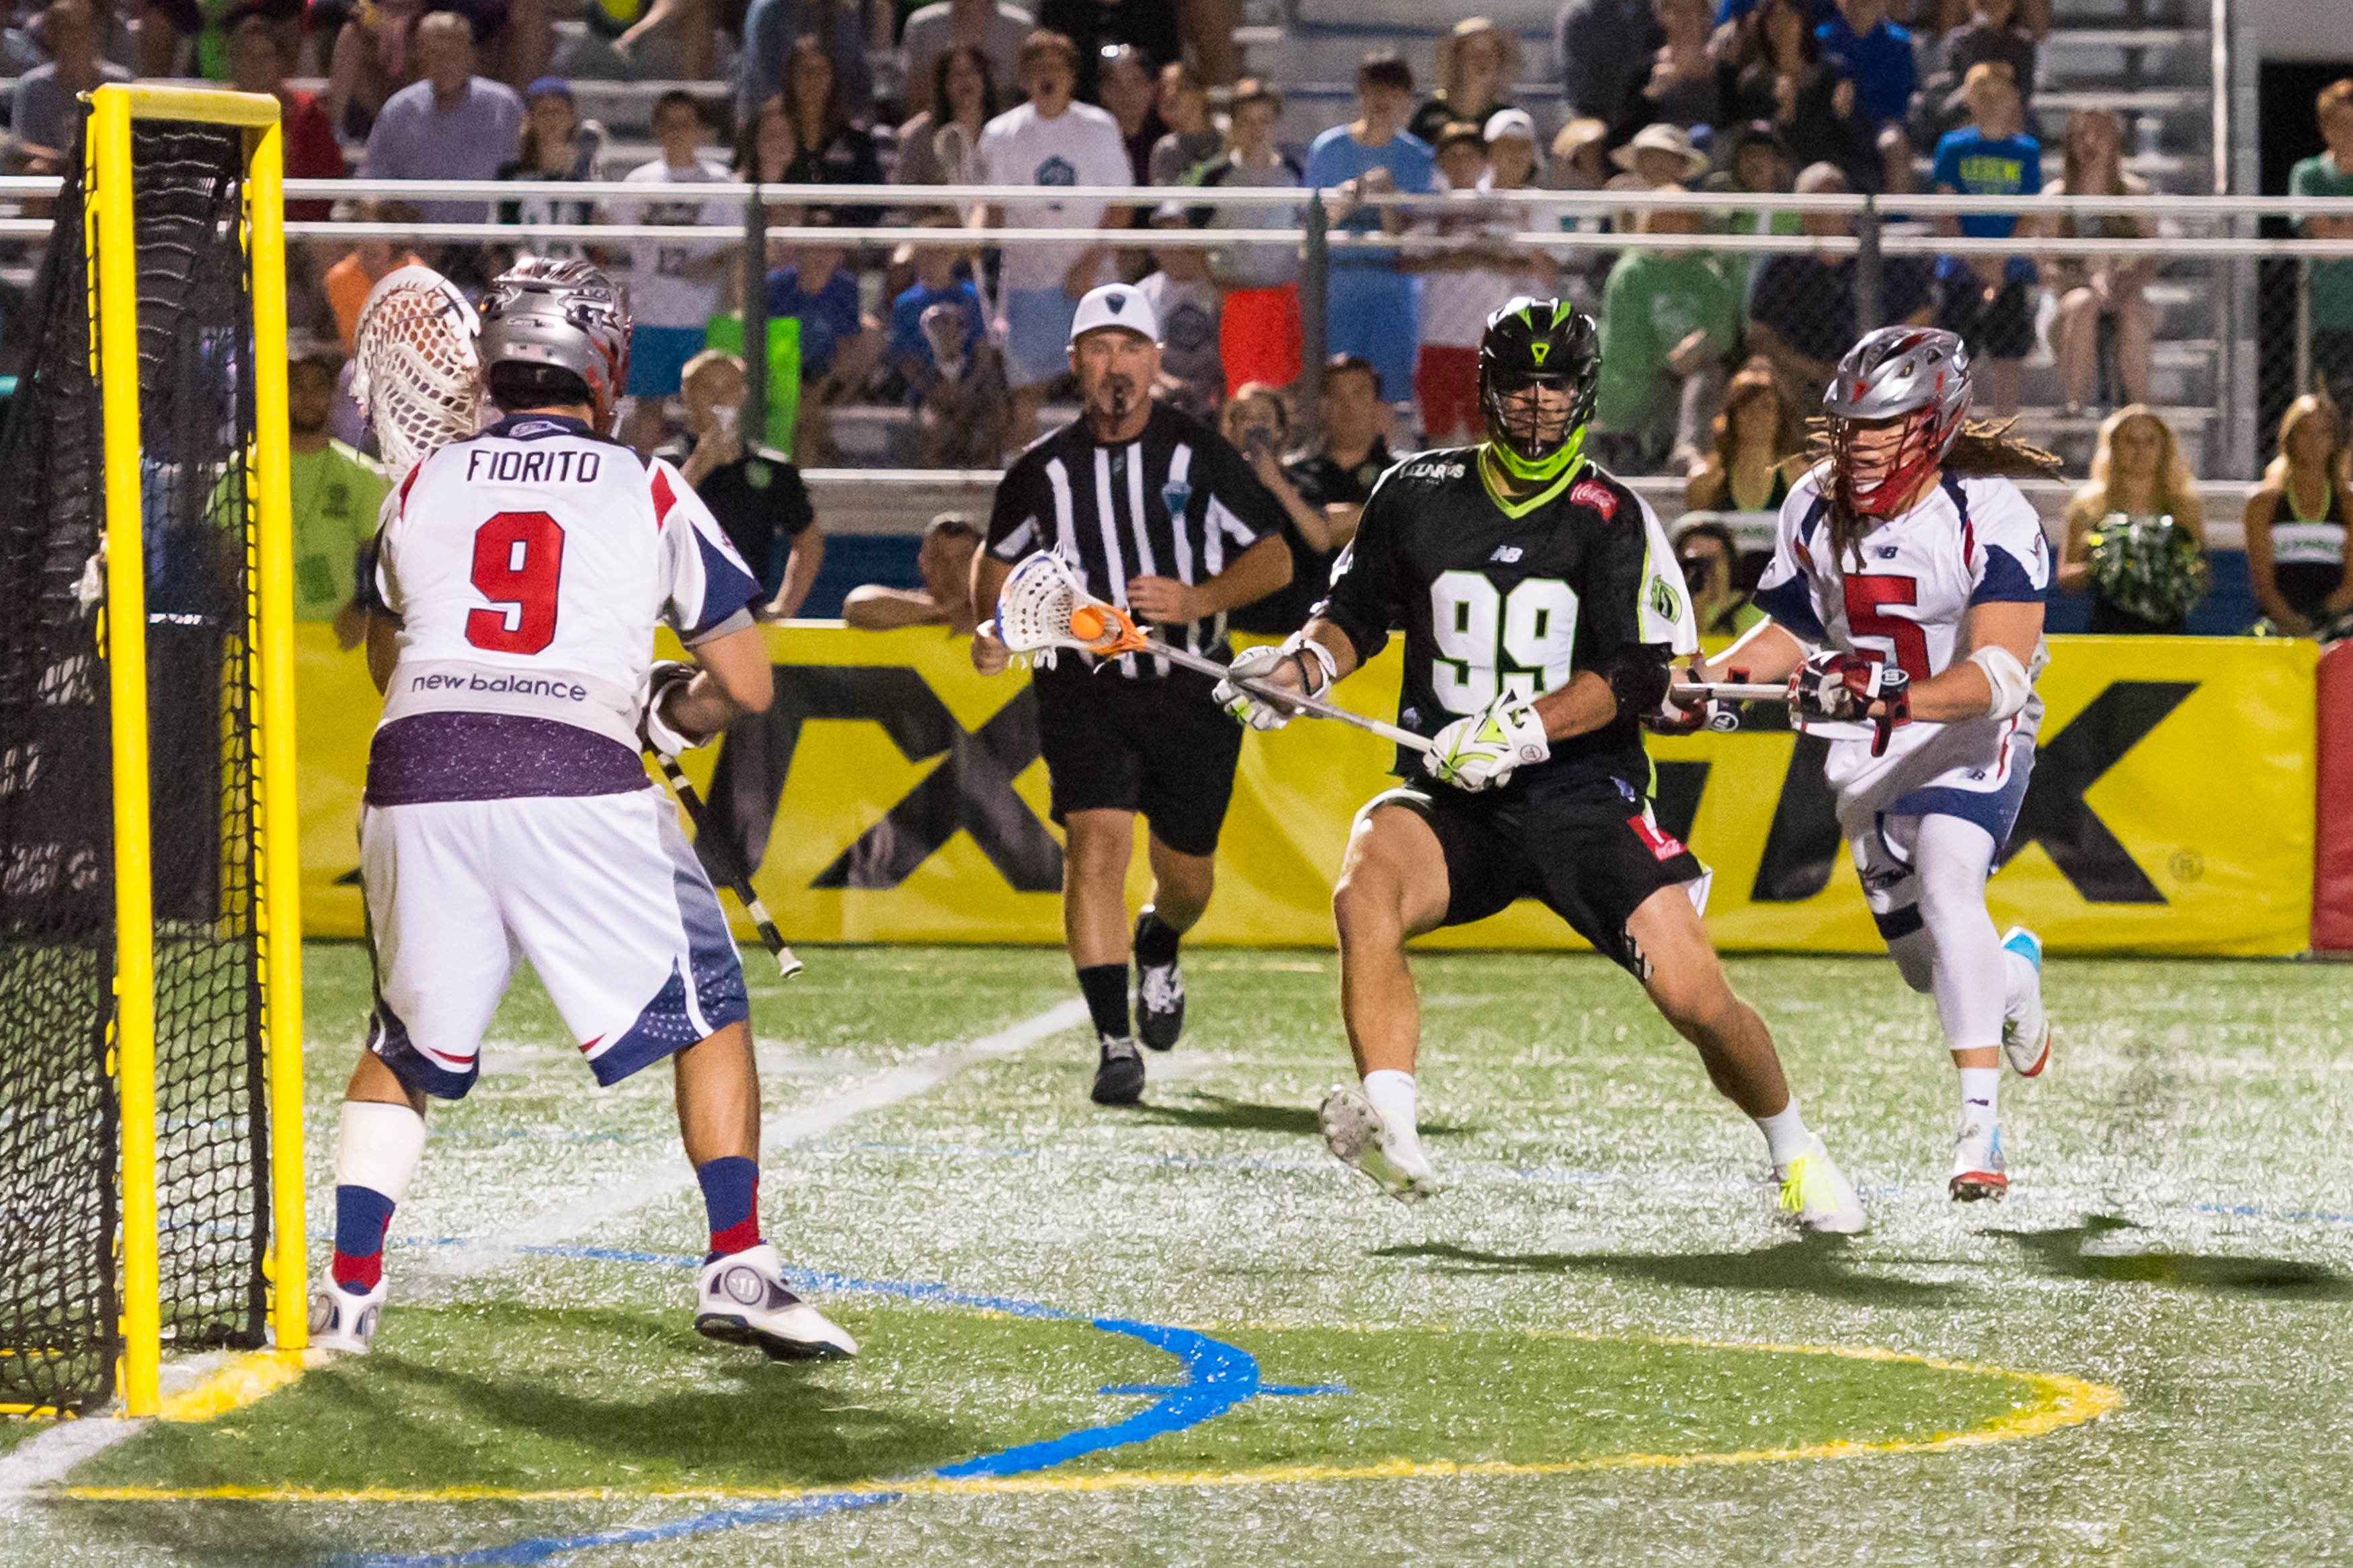 Image of Tyler Fiorito comes up with big time save against the Lizards